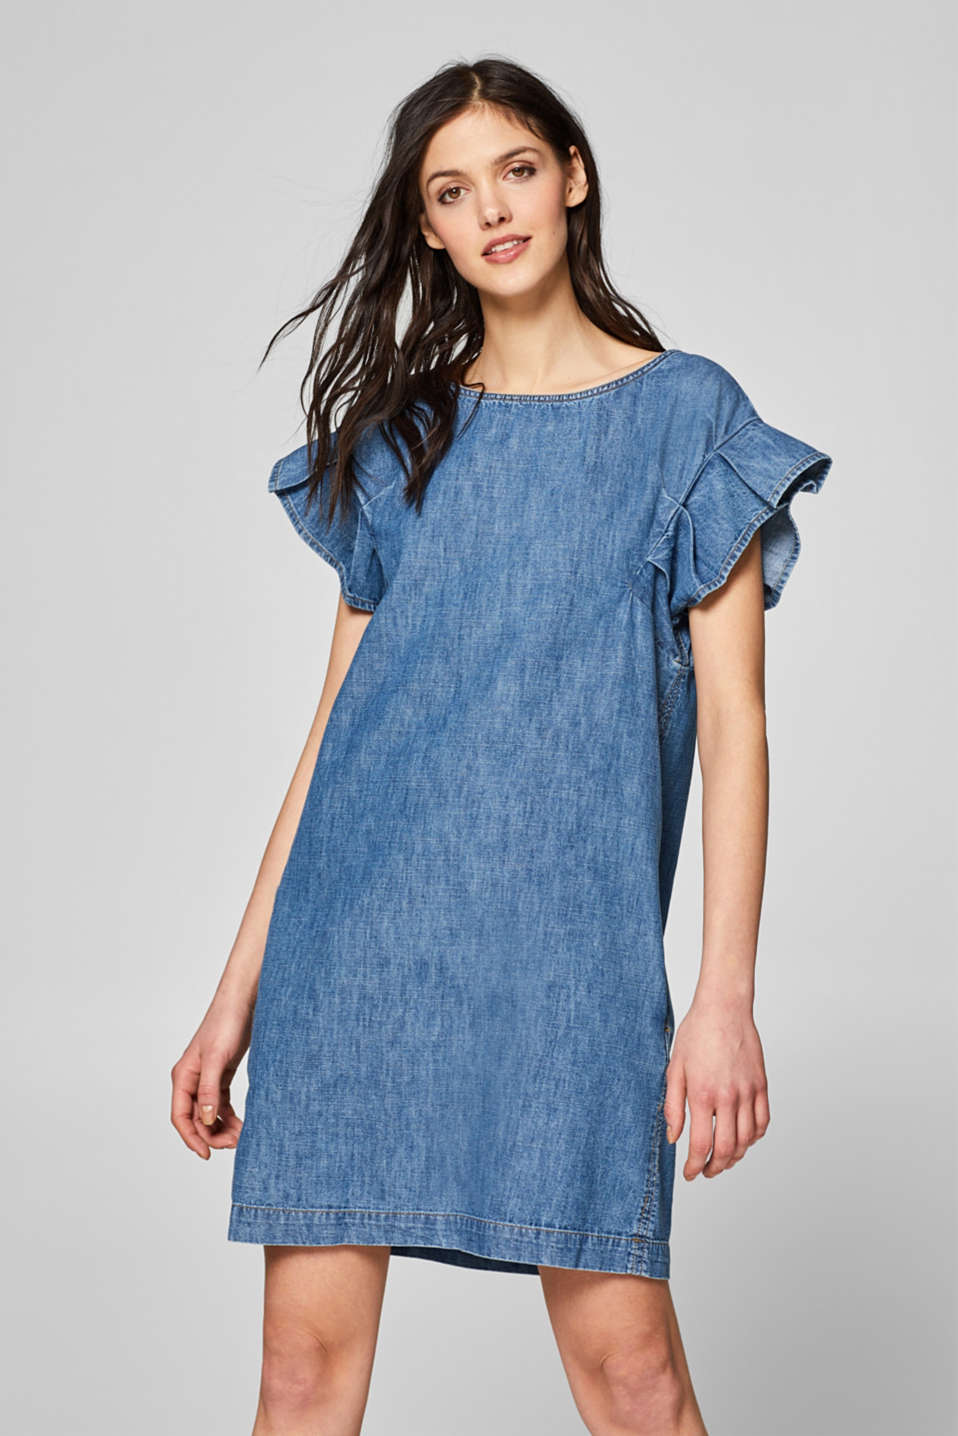 Denim dress with flounce sleeves, 100% cotton